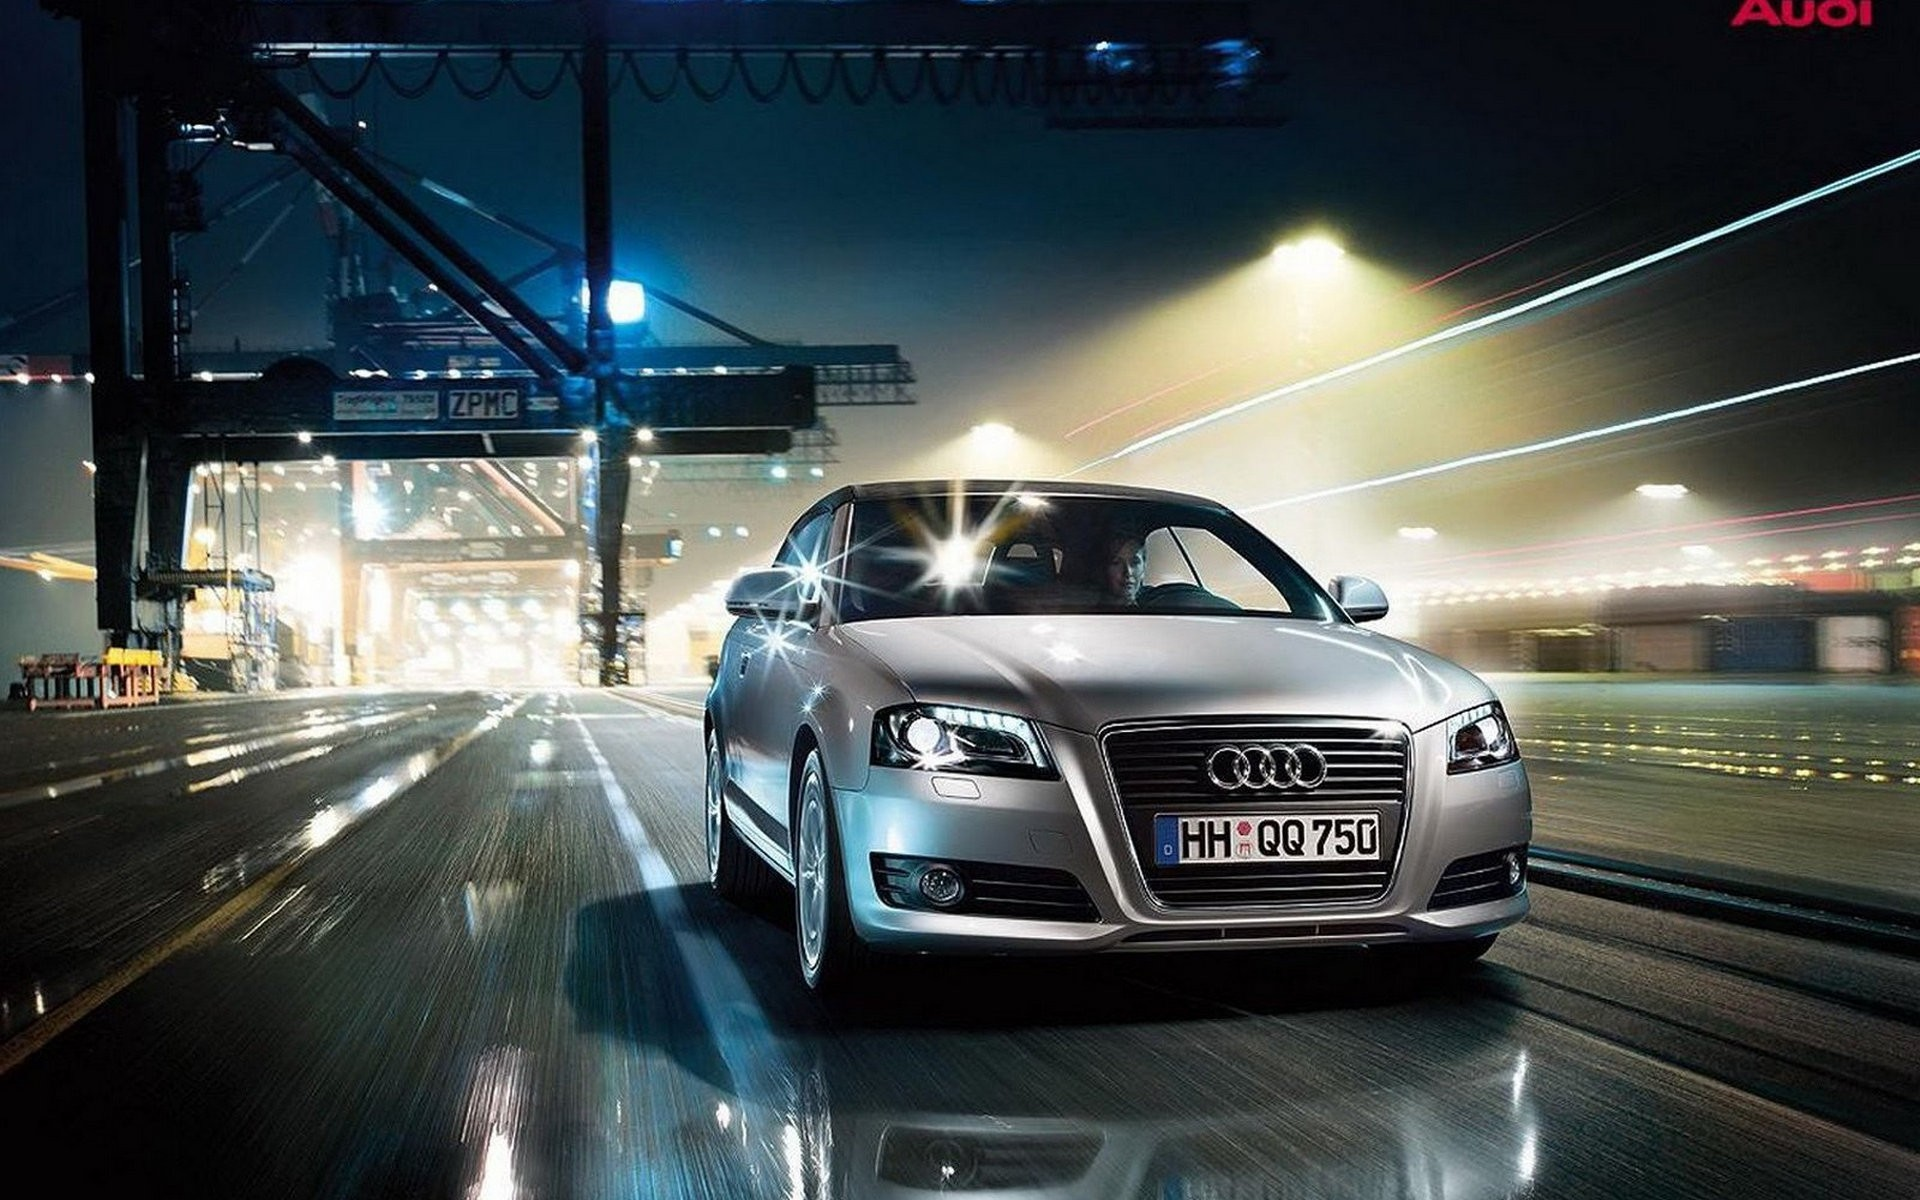 Audi A3 HD Wallpaper 2234 1920x1200